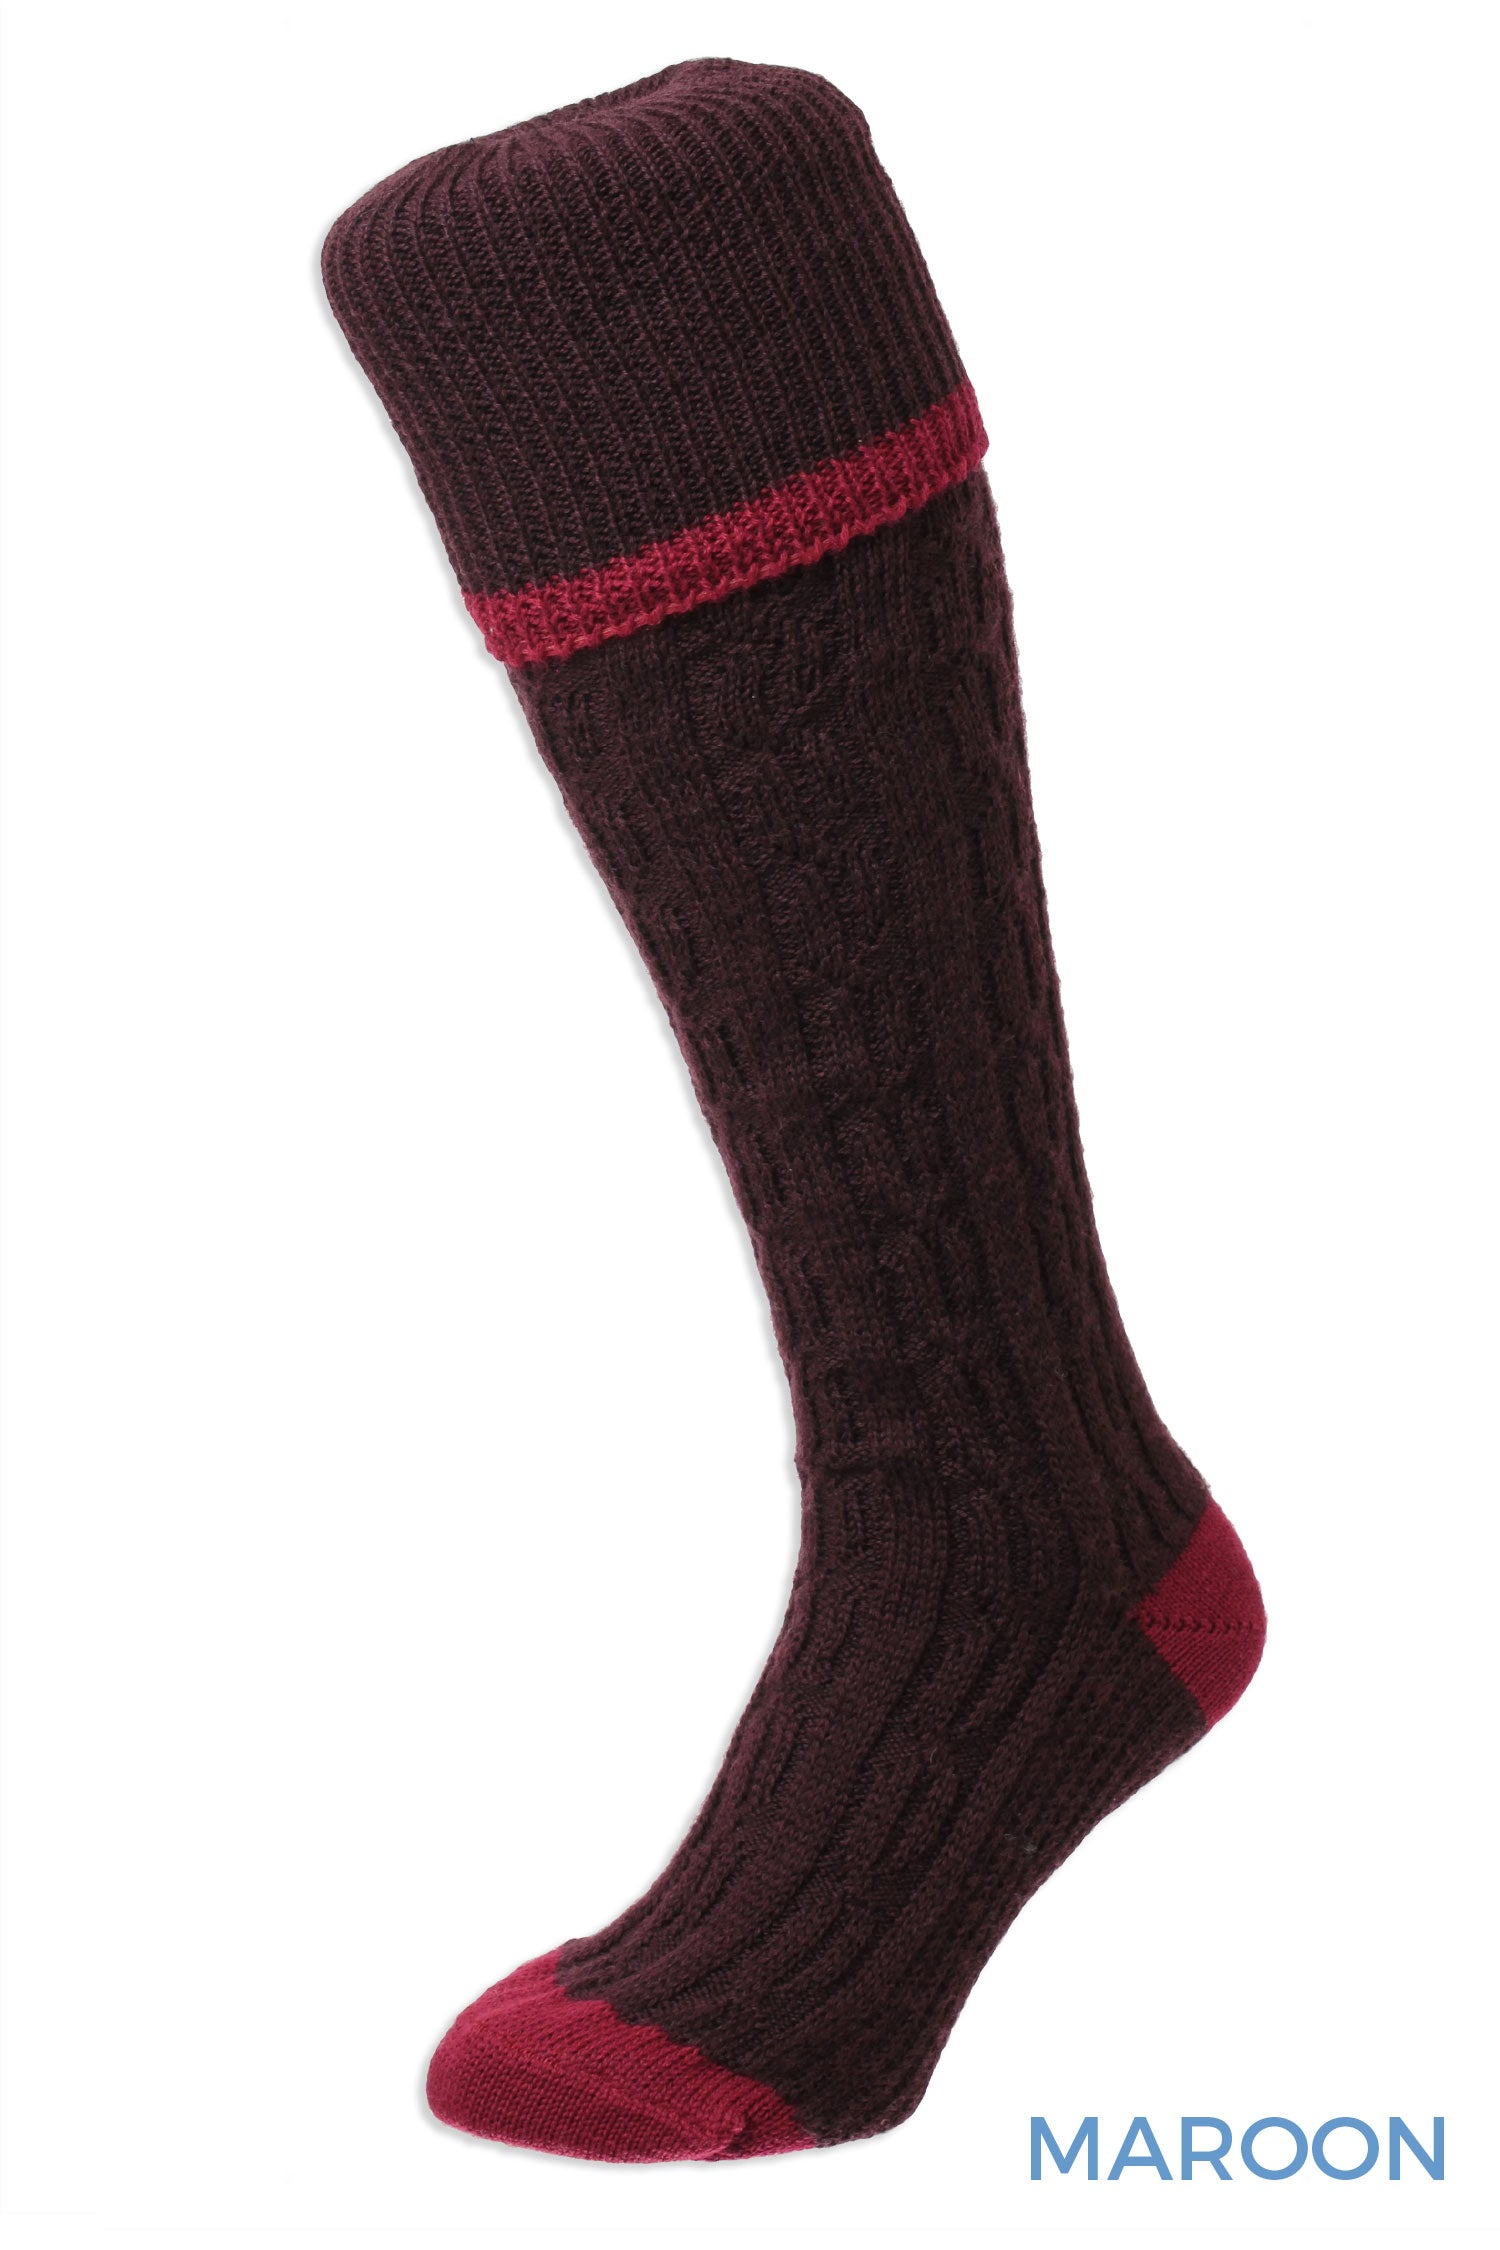 Maroon Cable Stripe Long Country Sock by HJ Hall